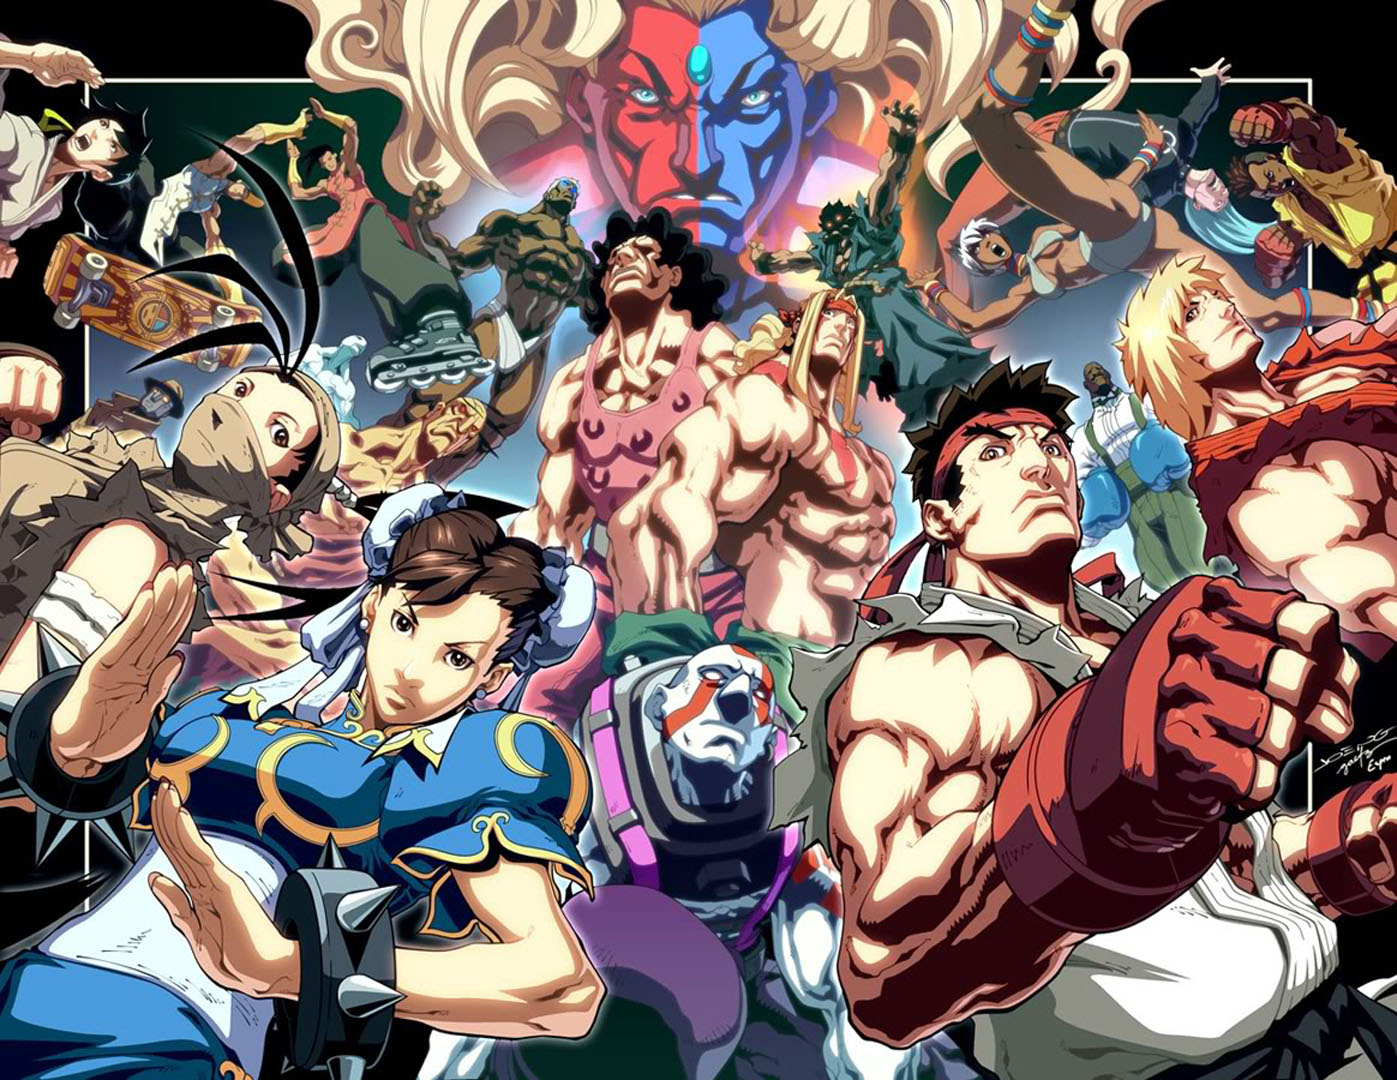 Cast of characters street fighter 3 wallpaper seasonal wallpapers voltagebd Choice Image